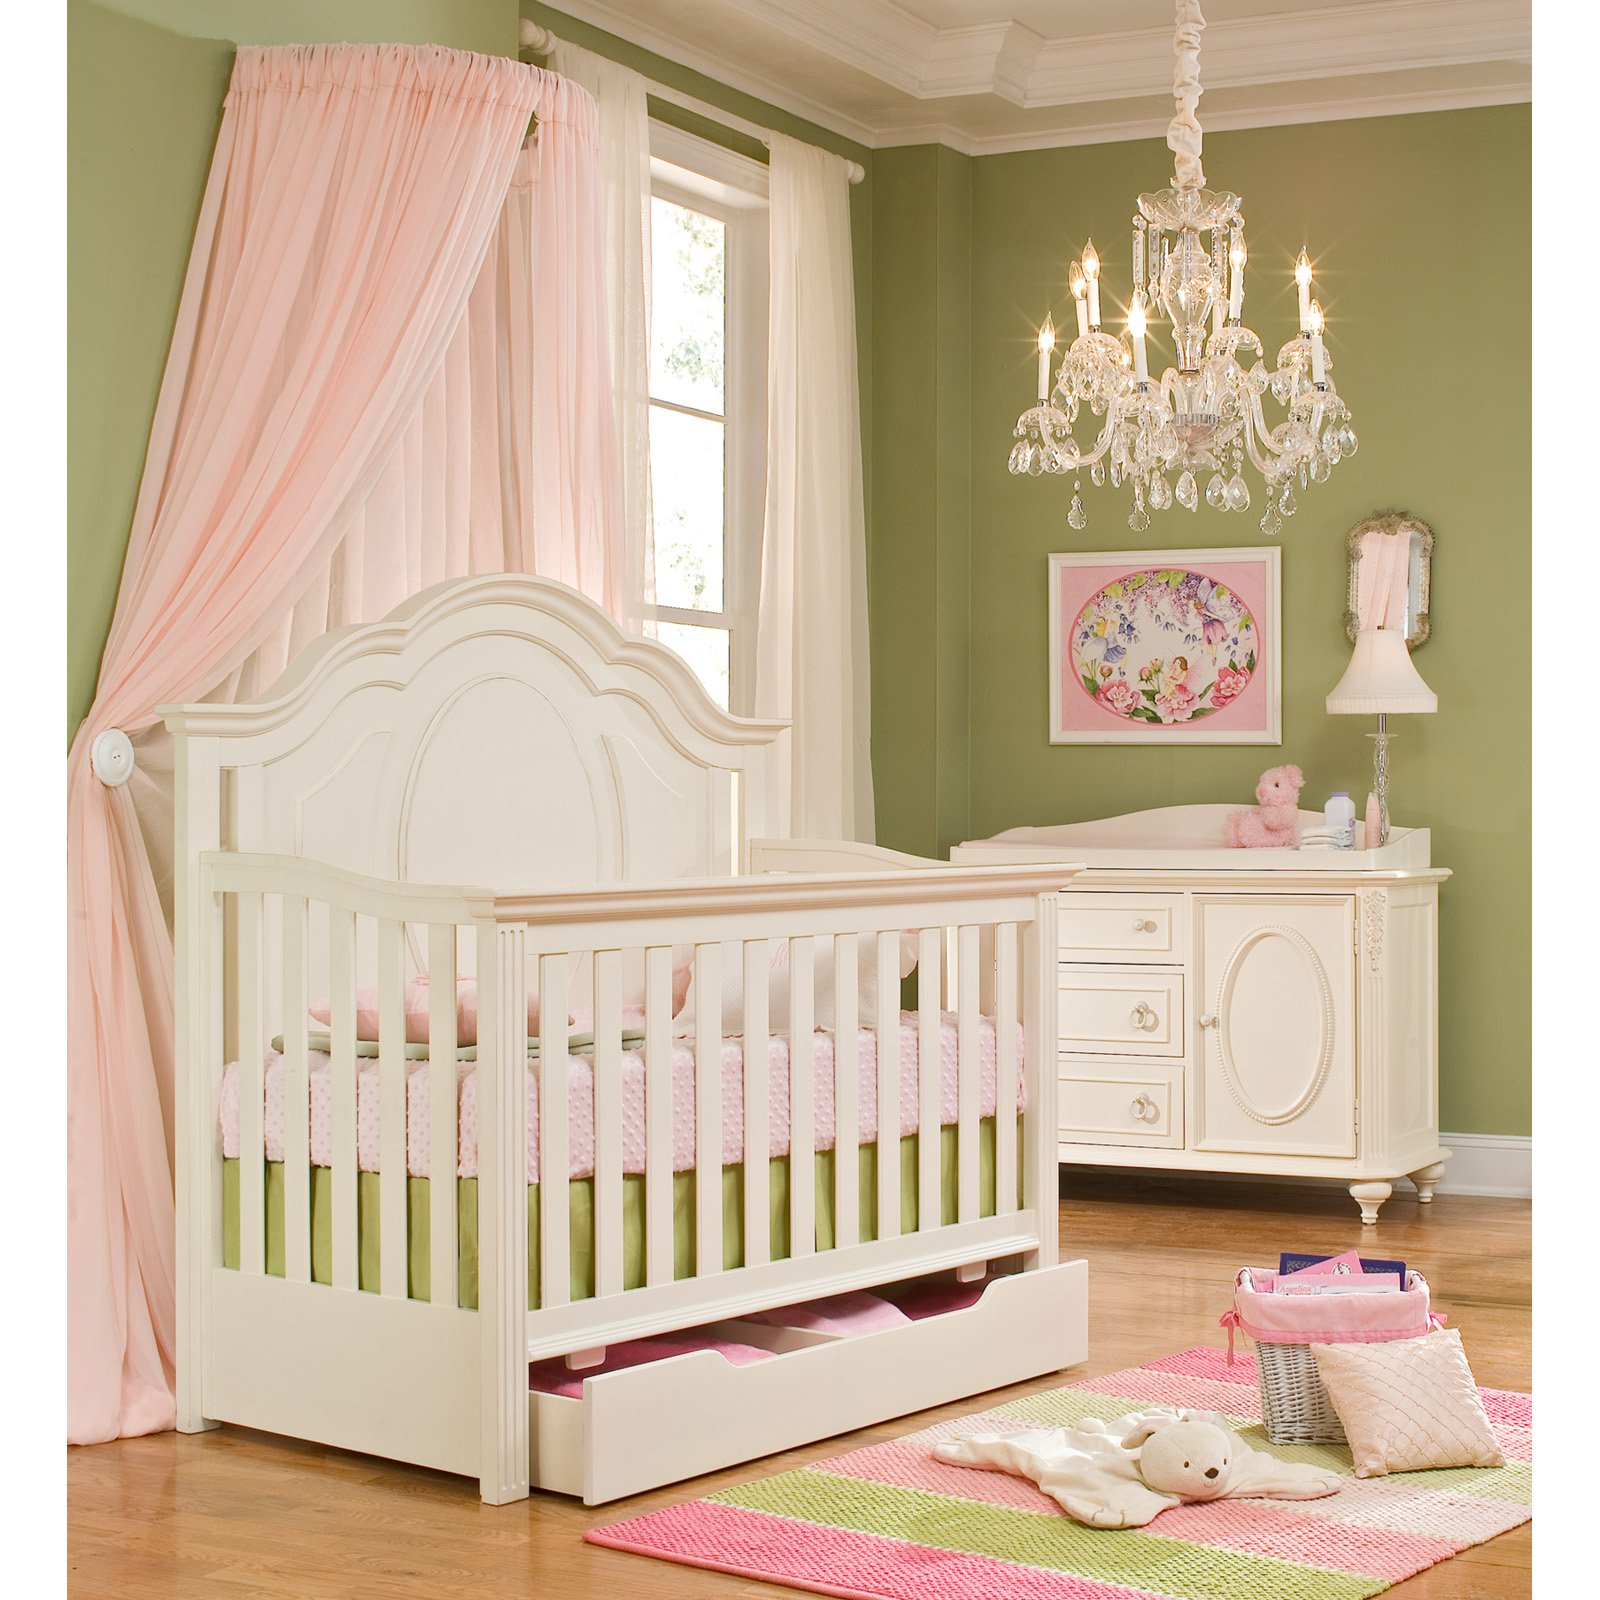 Lovely White Wooden Munire Crib With Storage On Wooden Floor Plus Lovely Stripped Carpet Matched With Olive Green Wall Plus Soft Pink Curtain And Chandelier For Inspiring Nursery Decor Ideas